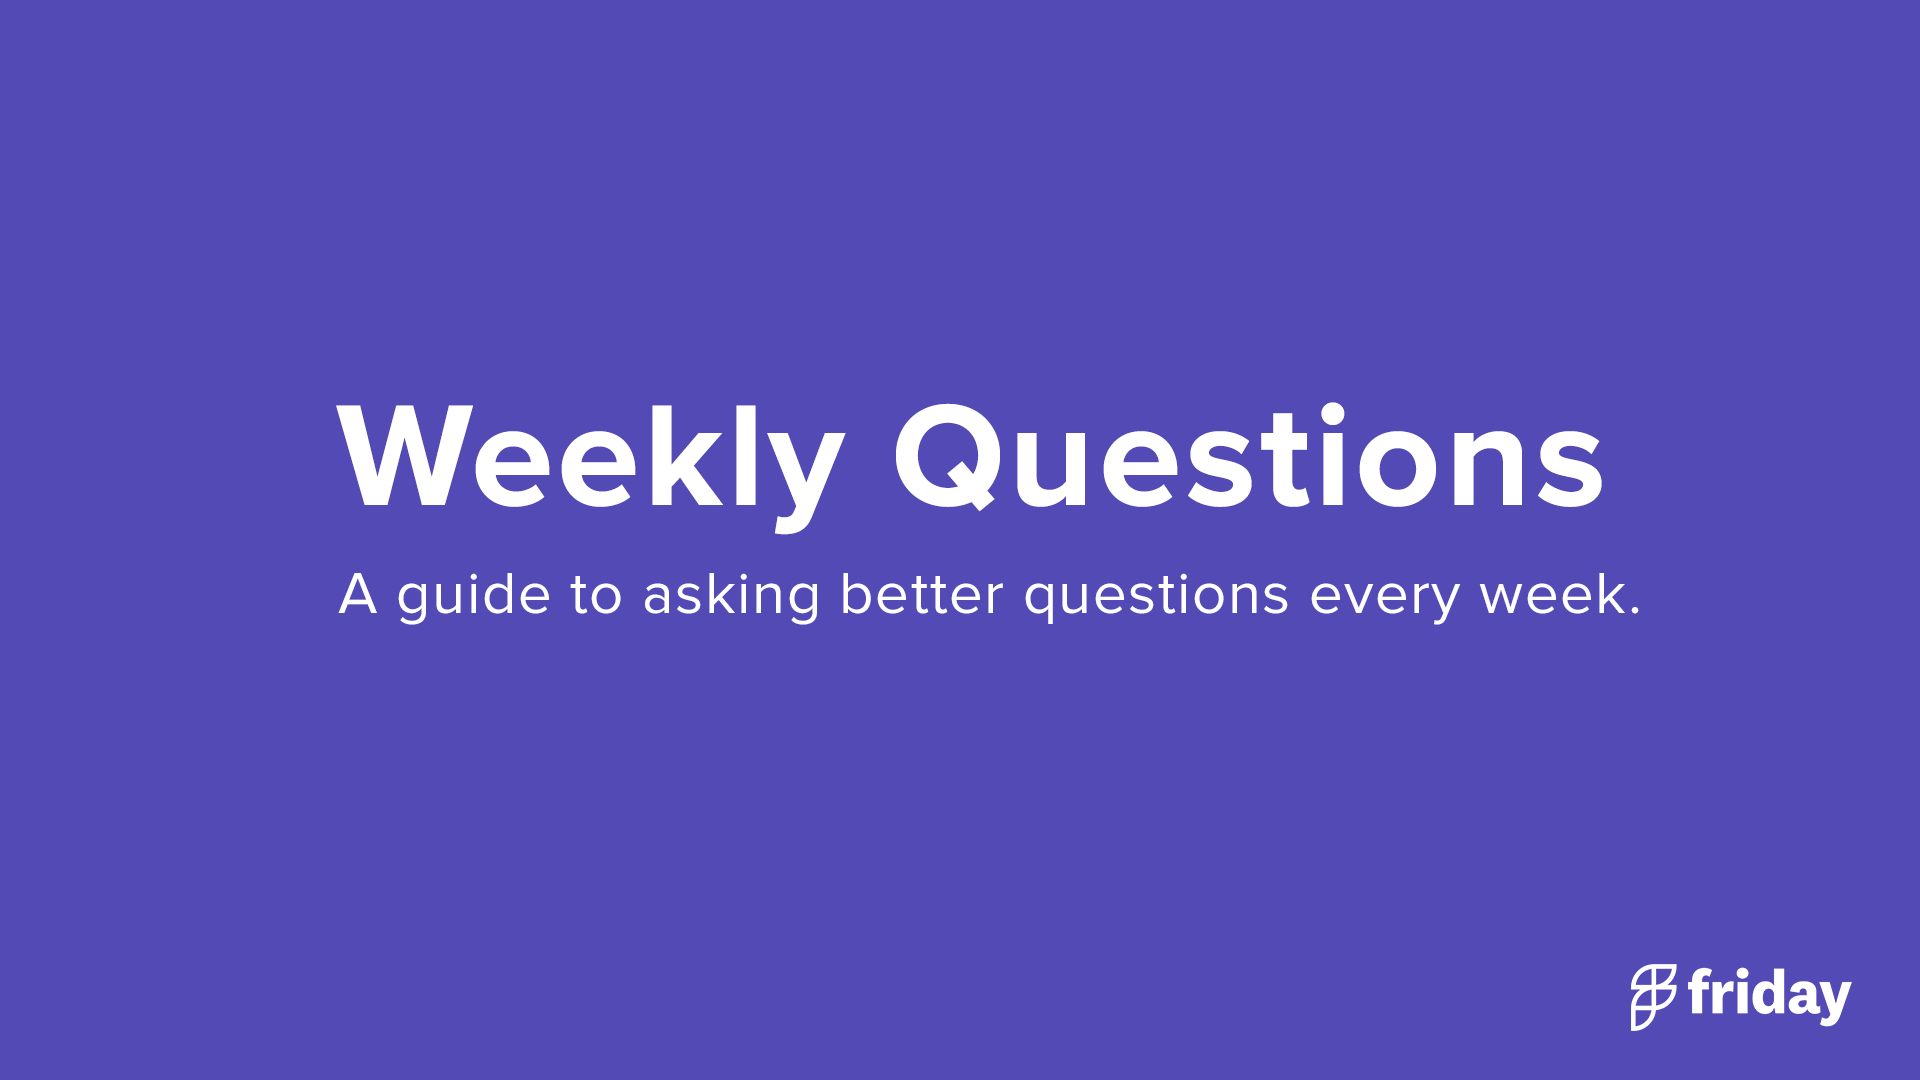 Weekly Questions